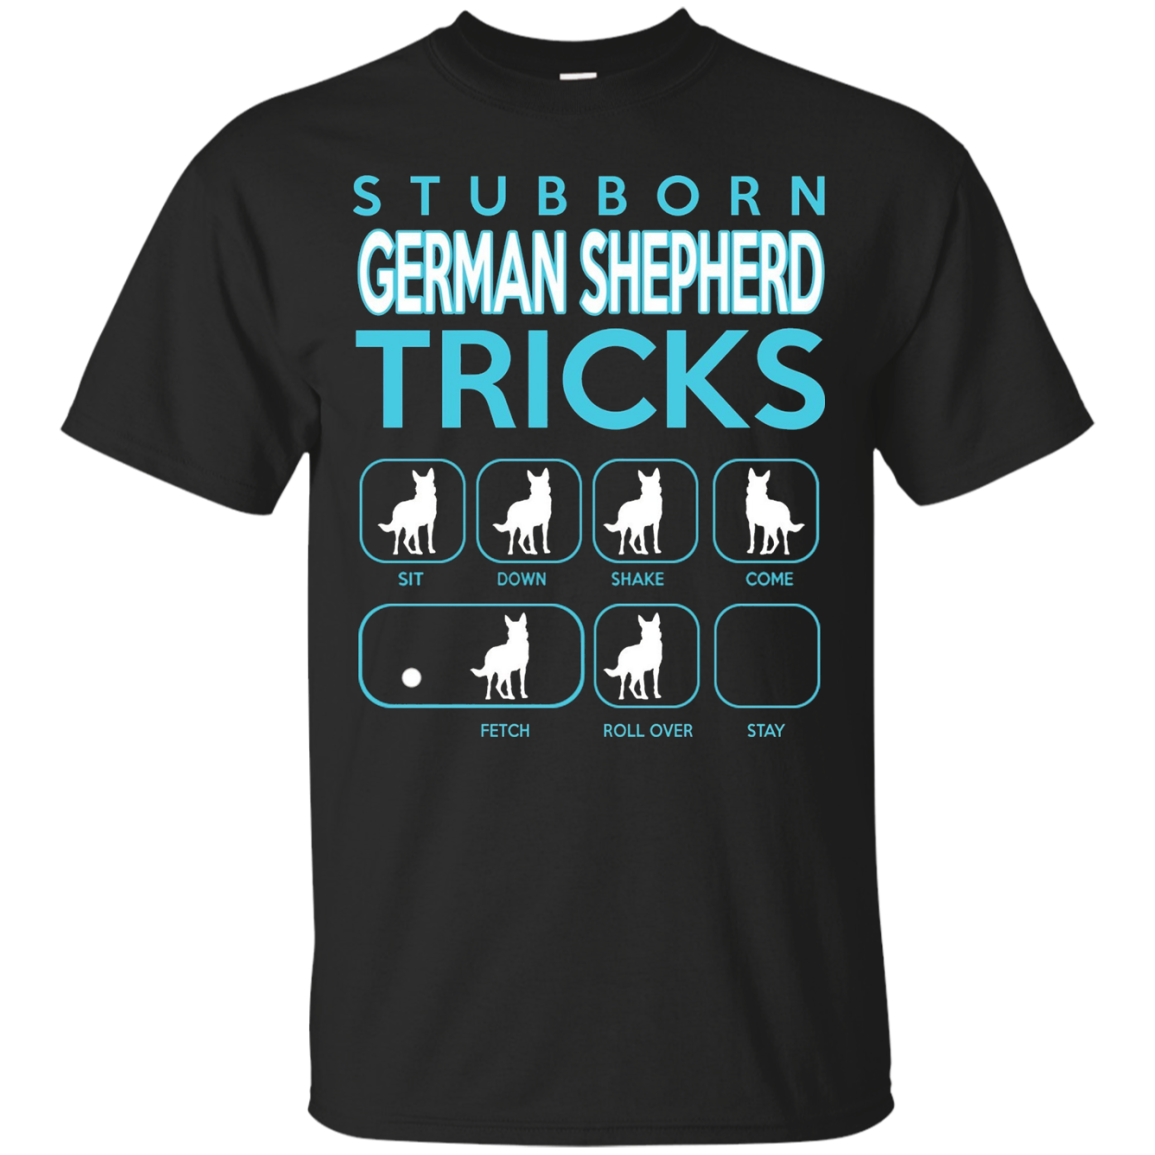 Stubborn German Shepherd Tricks T-shirt